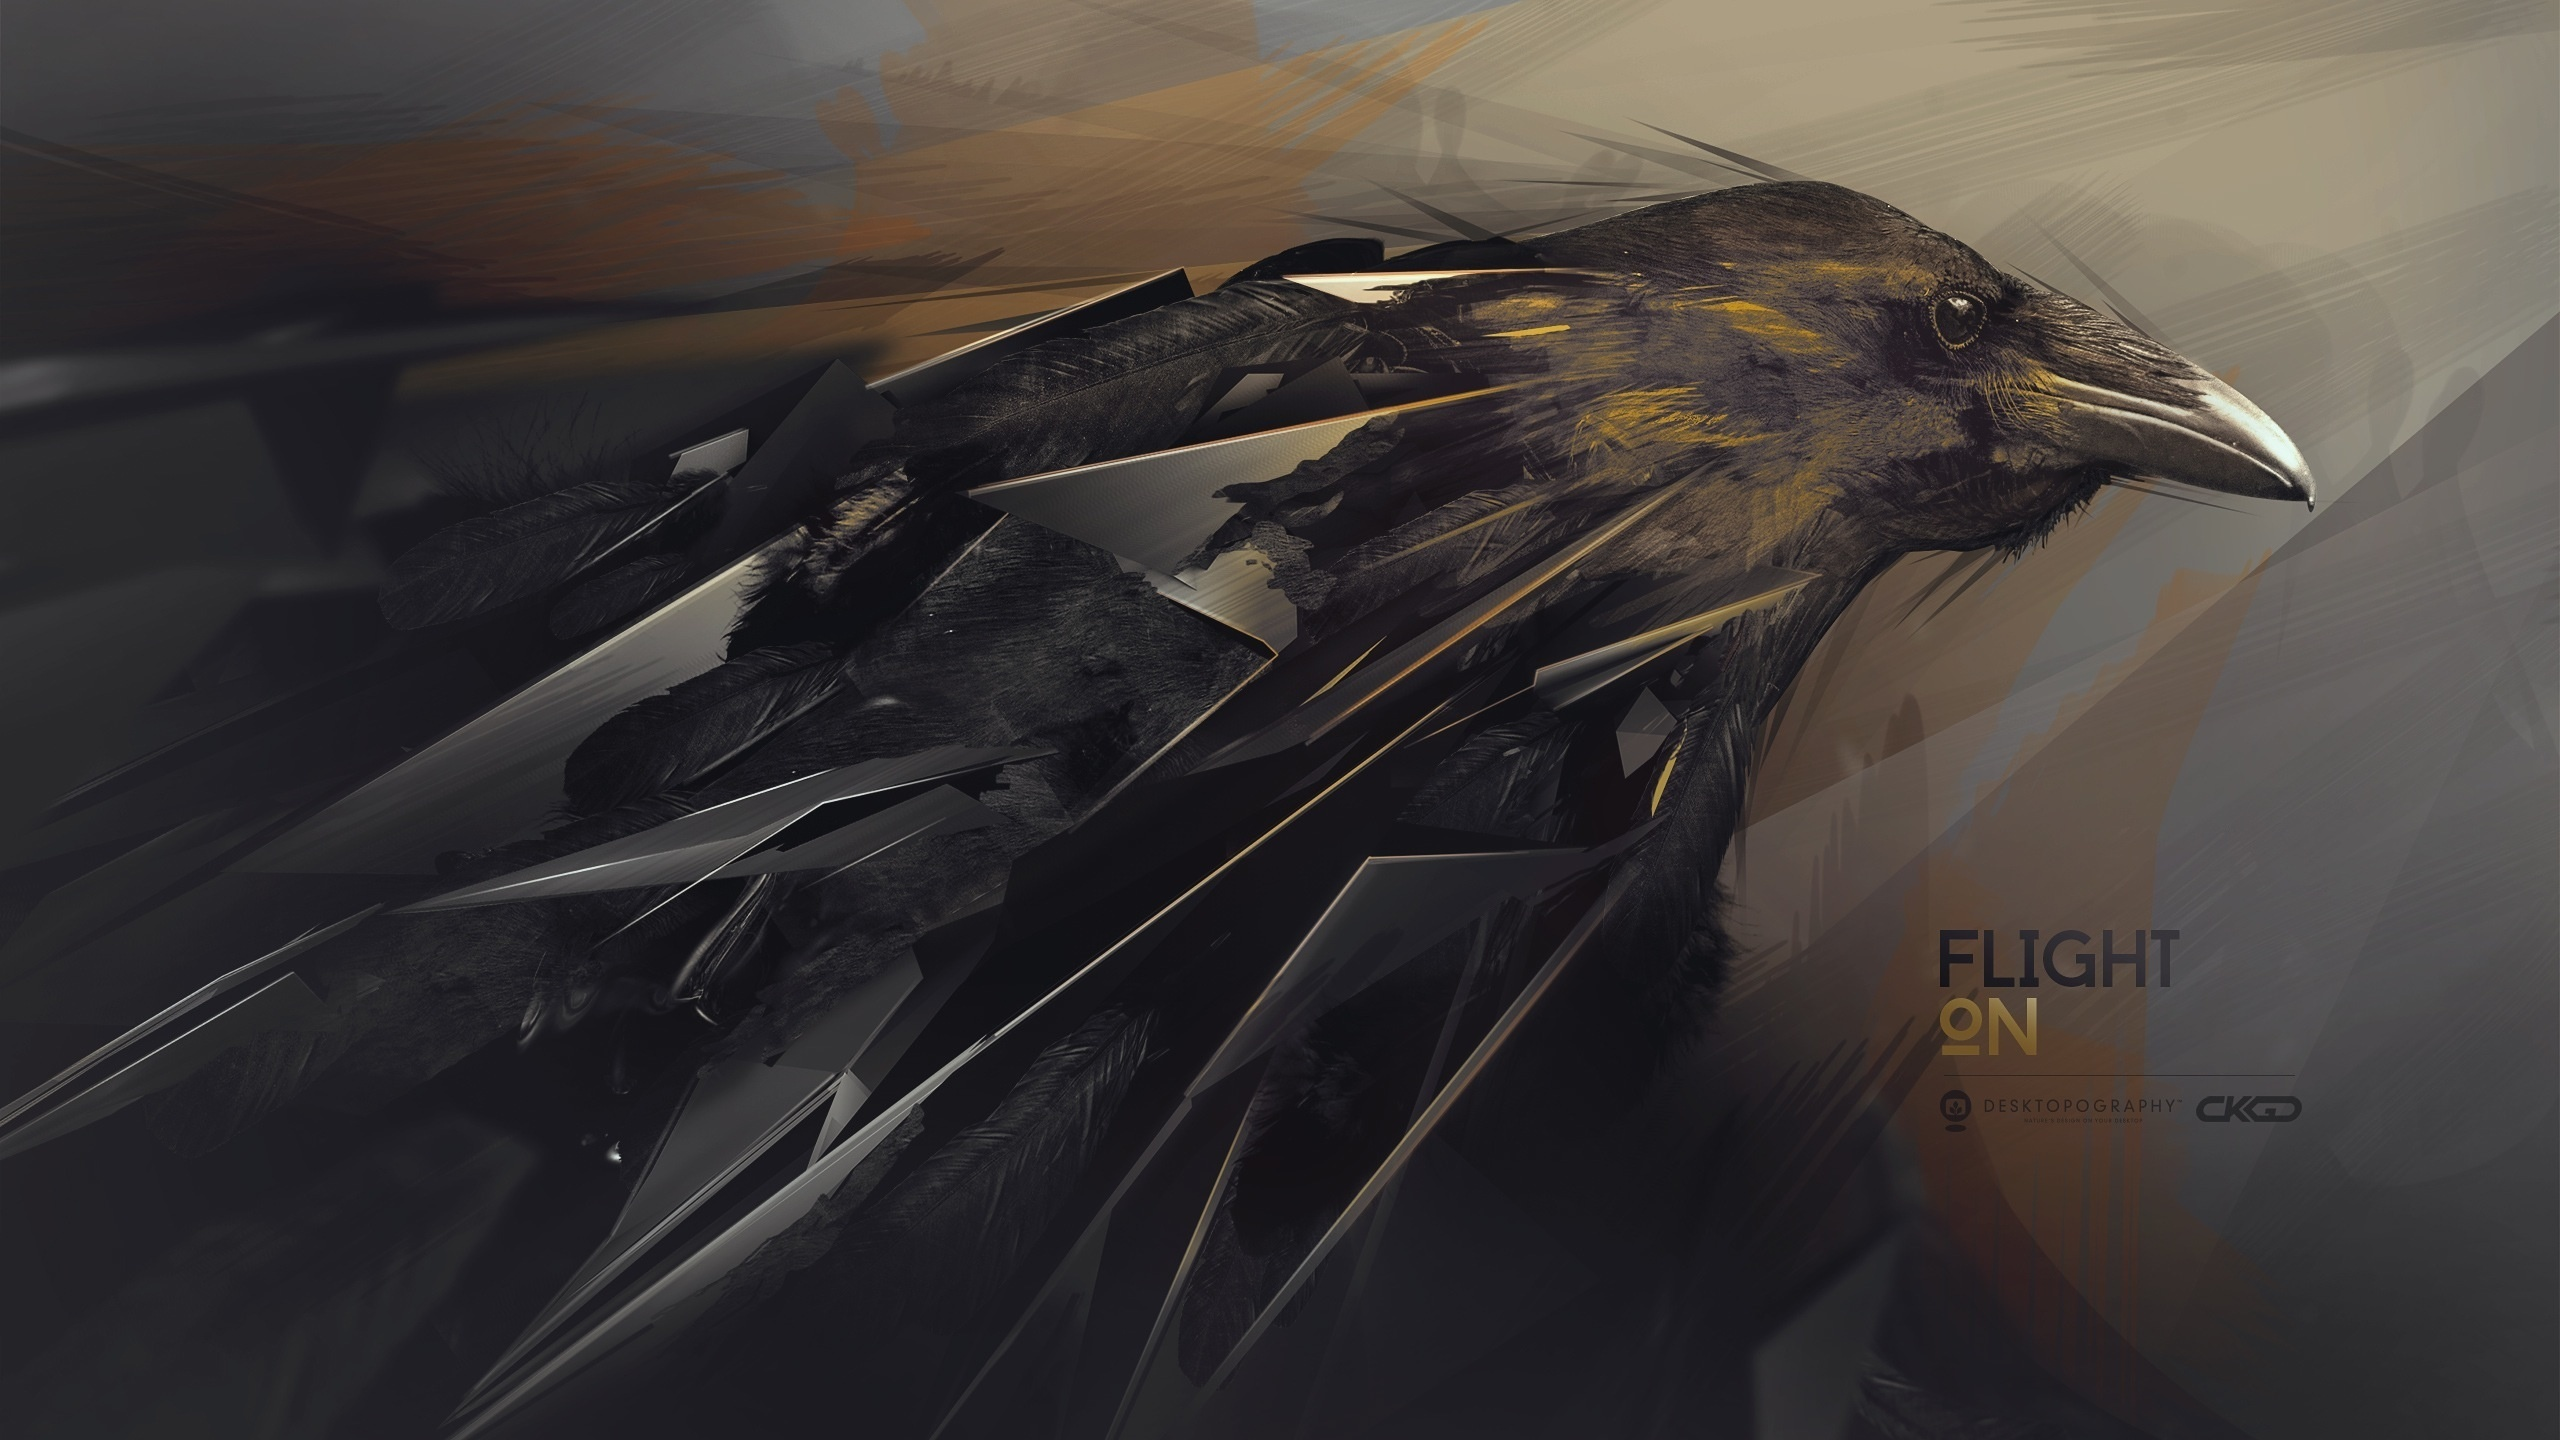 Abstraction hq wallpaper raven wallpaper 2560x1440 2560x1440